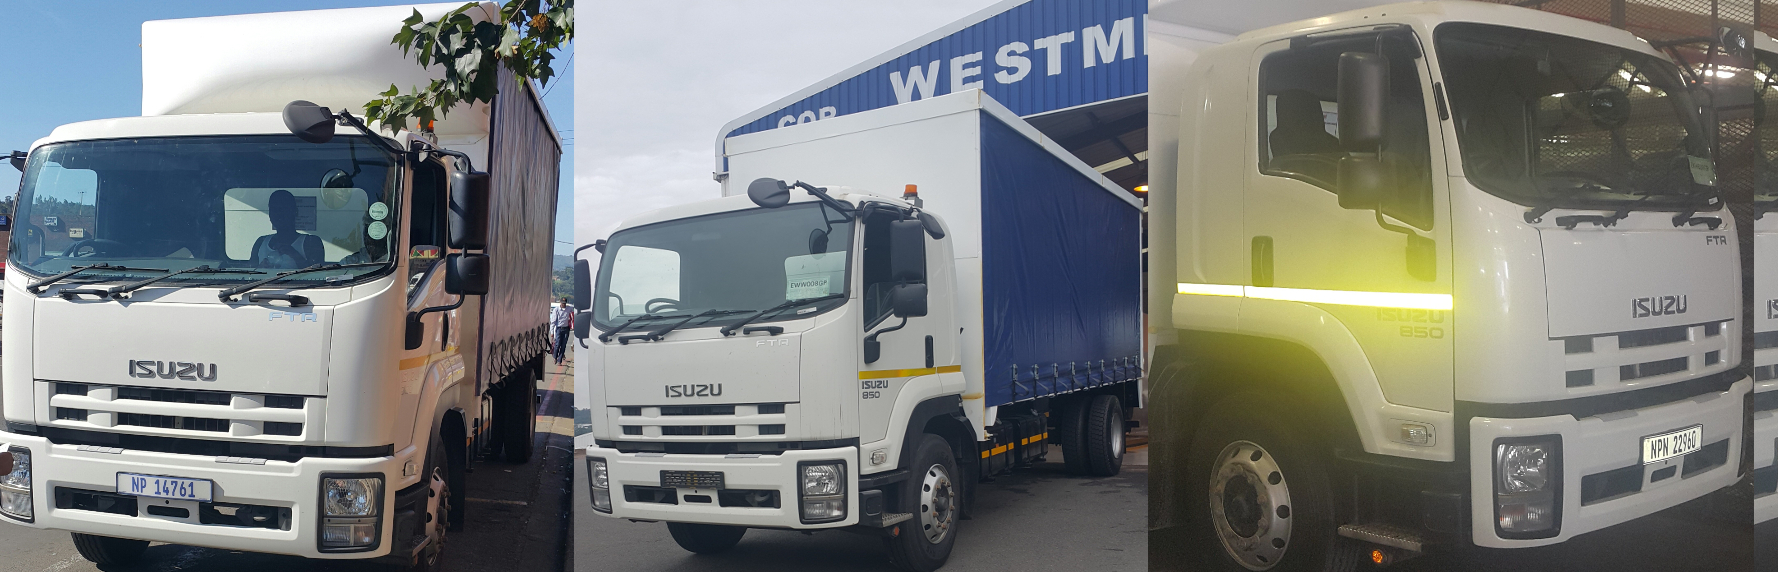 We offer Safe, Efficient and Reliable transport solutions